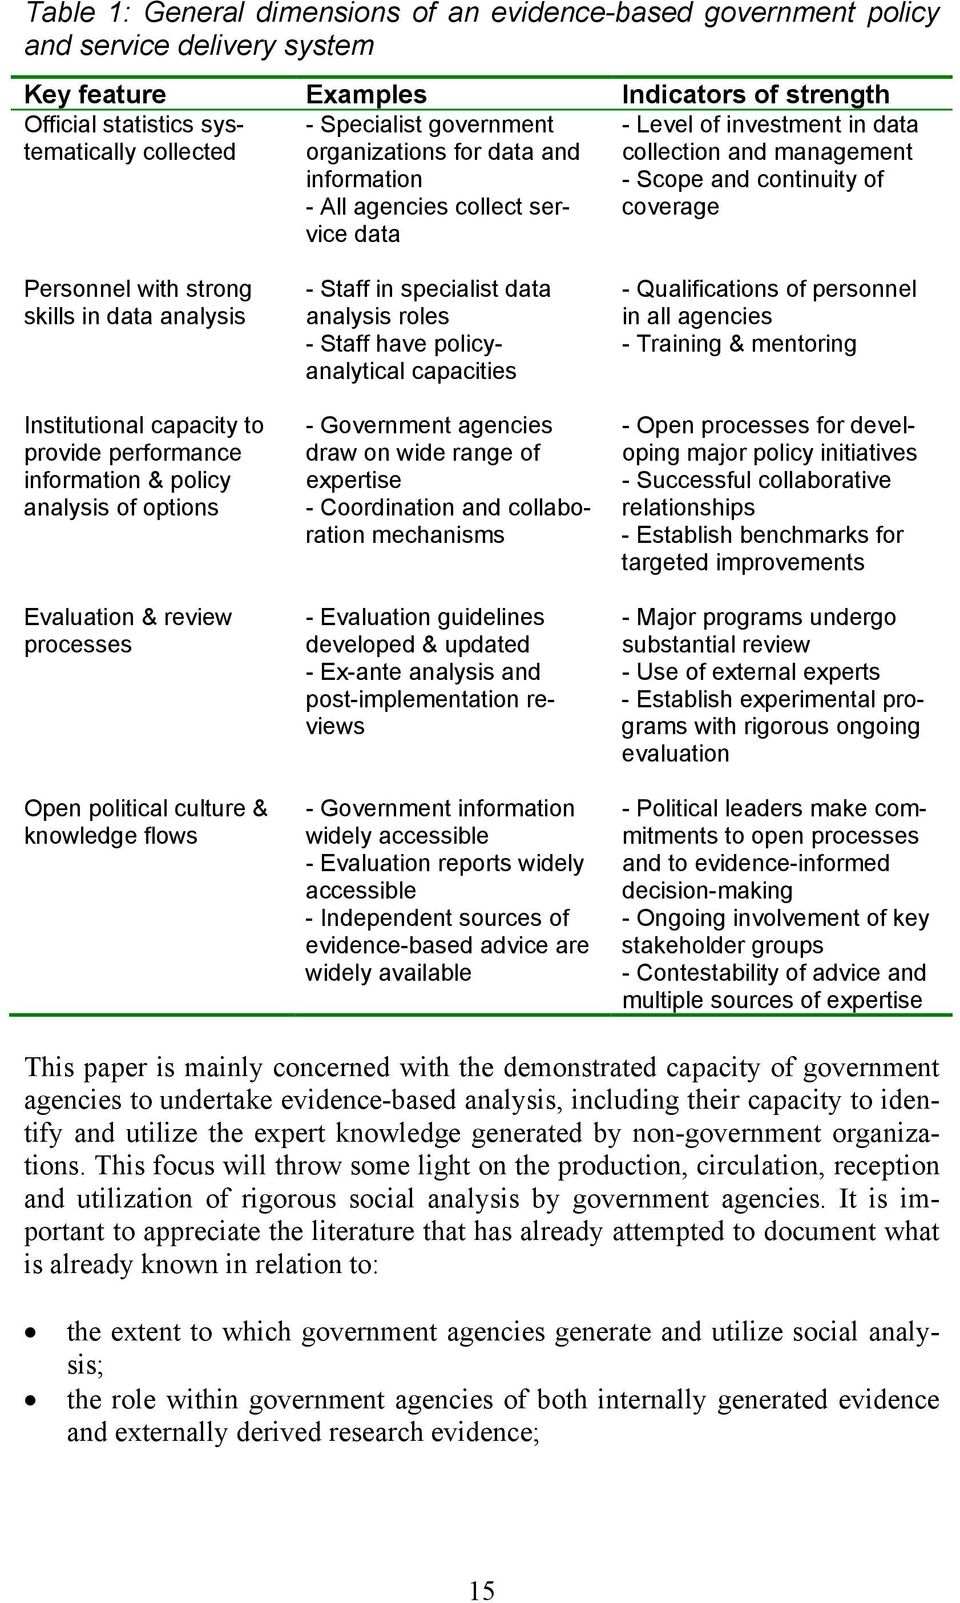 skills in data analysis Institutional capacity to provide performance information & policy analysis of options Evaluation & review processes Open political culture & knowledge flows - Staff in